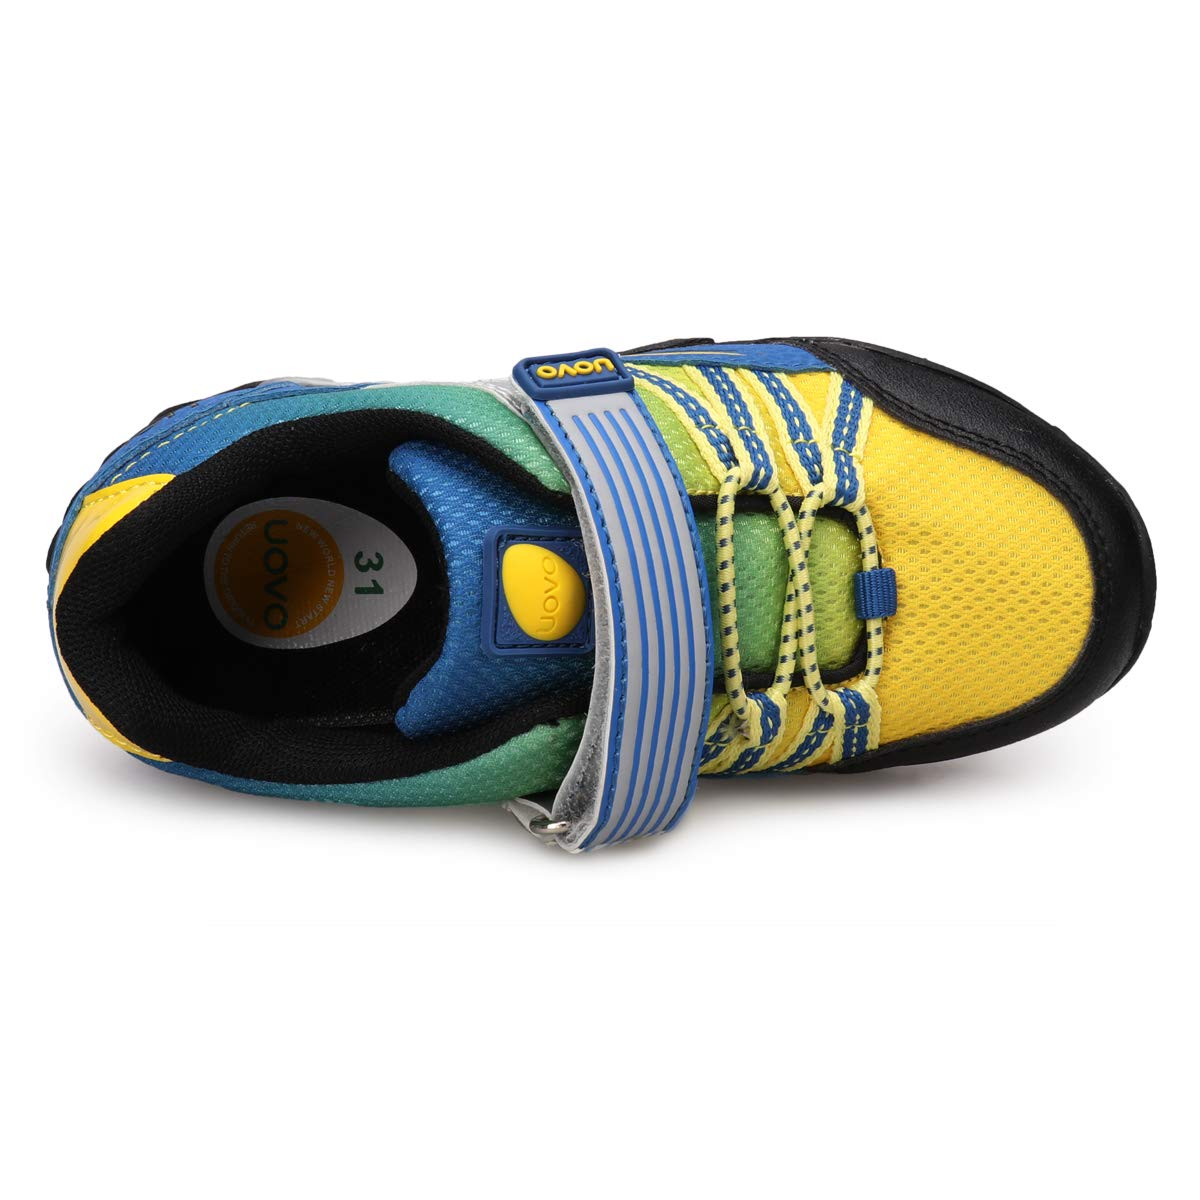 UOVO Little Boys Shoes Running Sneakers Kids Hiking Athletic Tennis Shoes for Toddler Boys Blue by UOVO (Image #4)